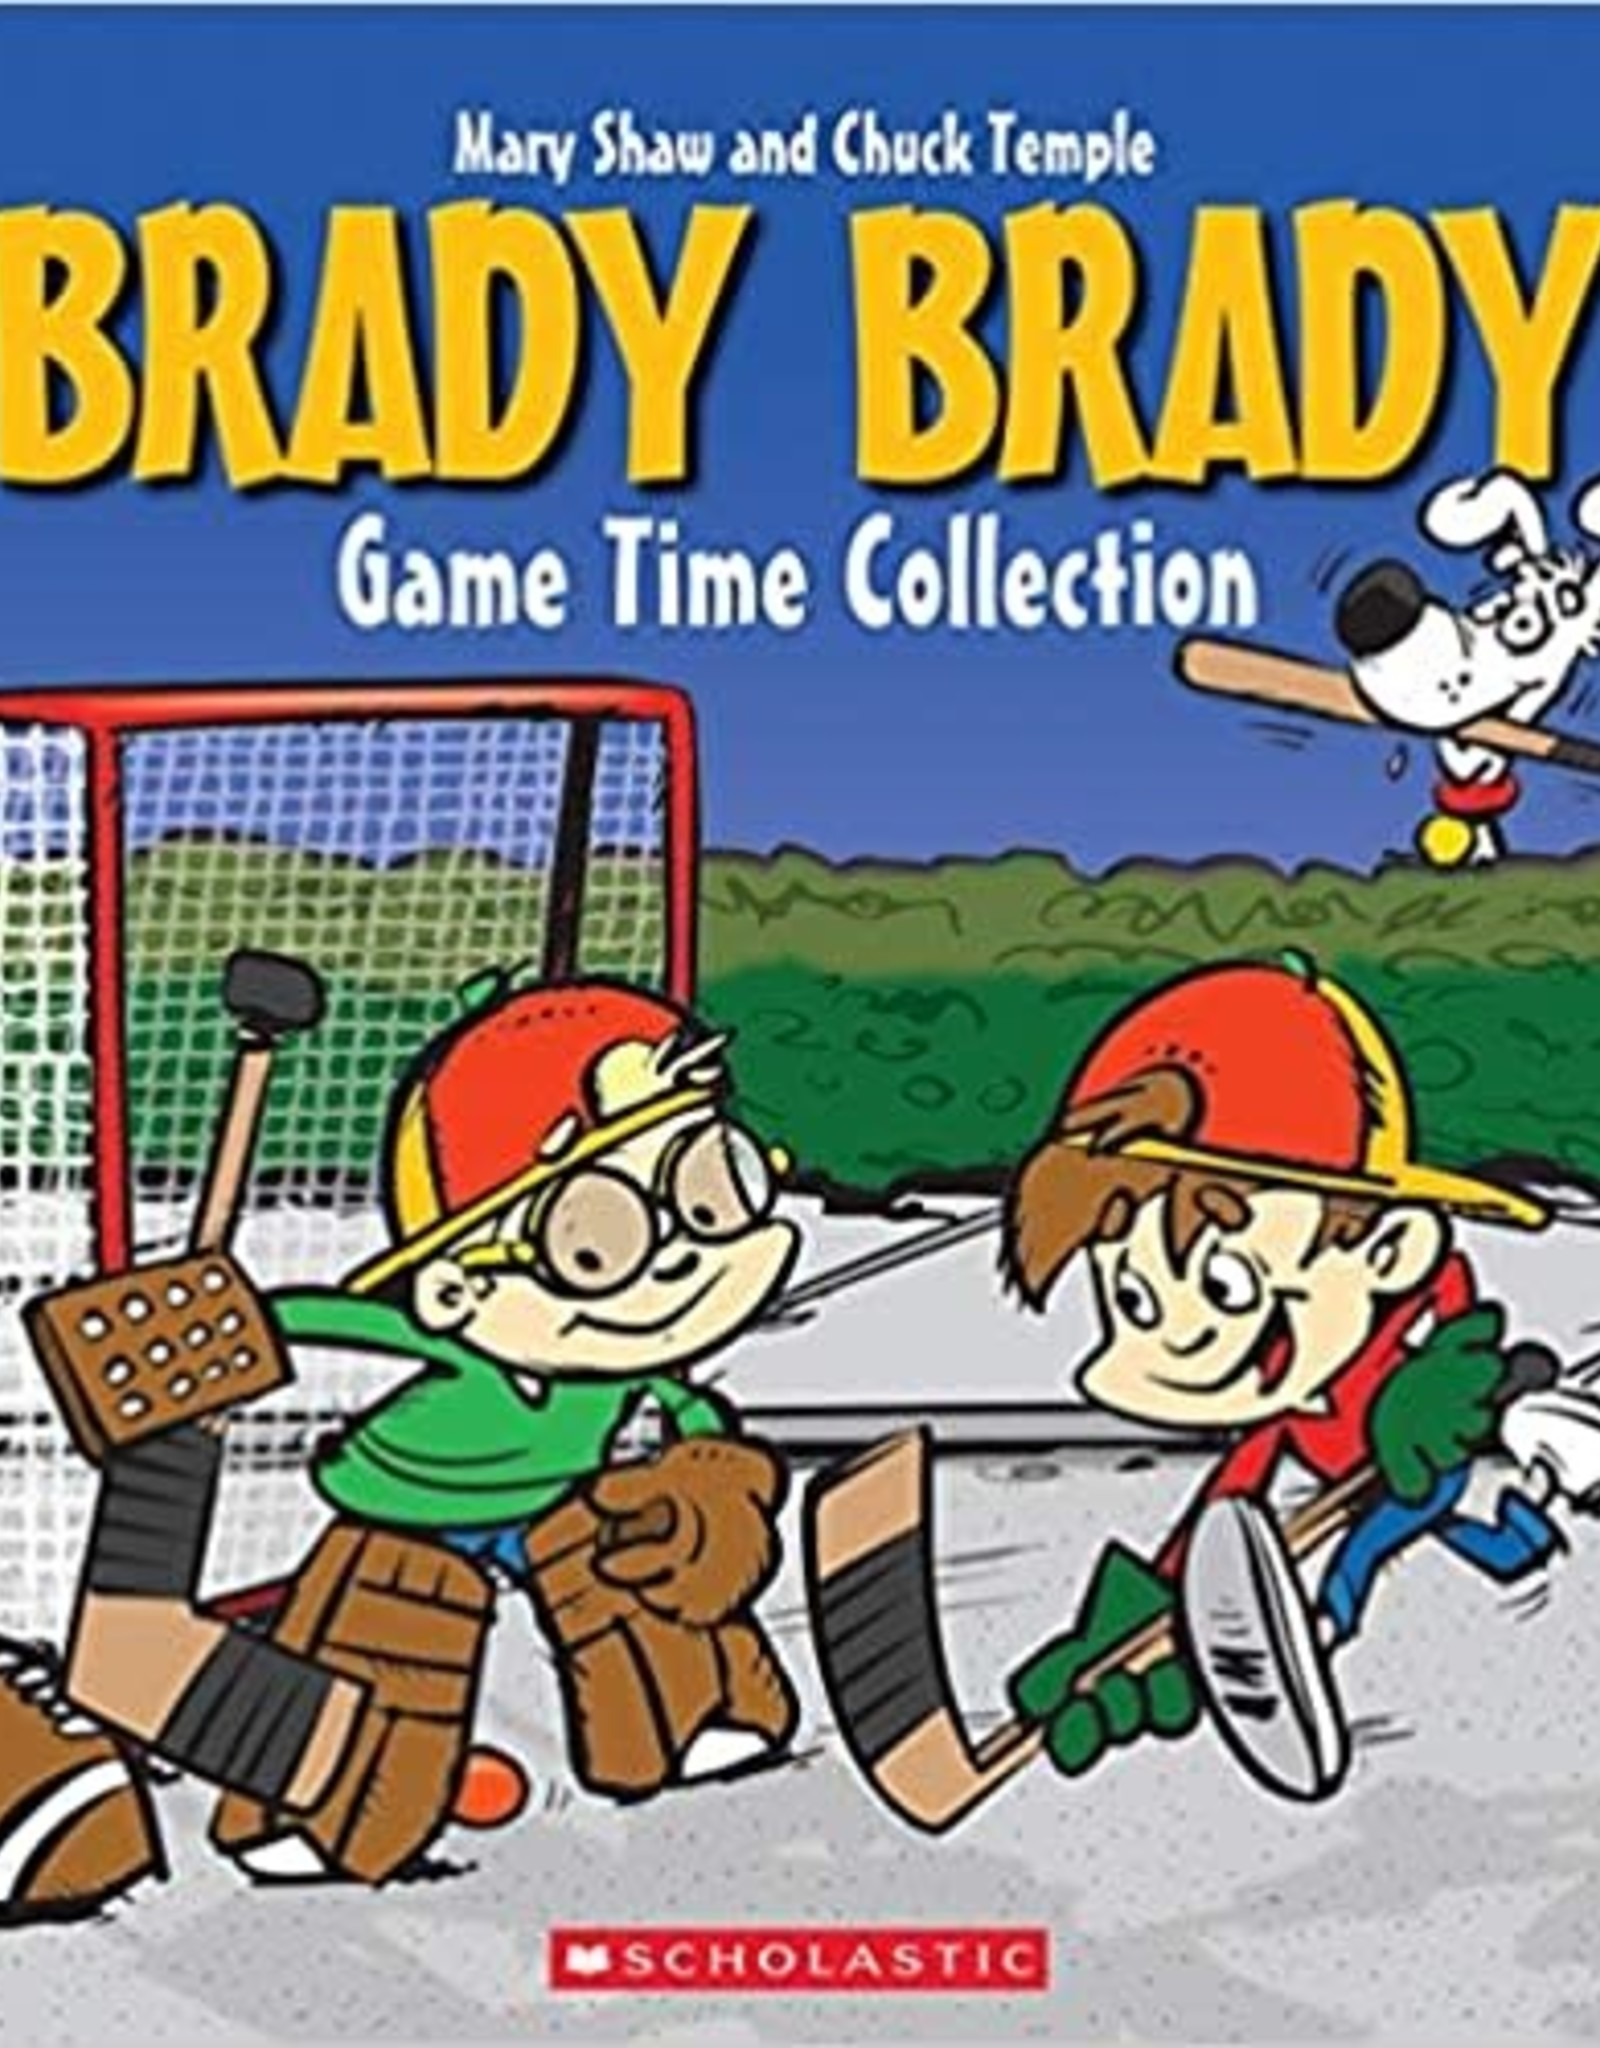 Scholastic Brady Brady Game Time Collection